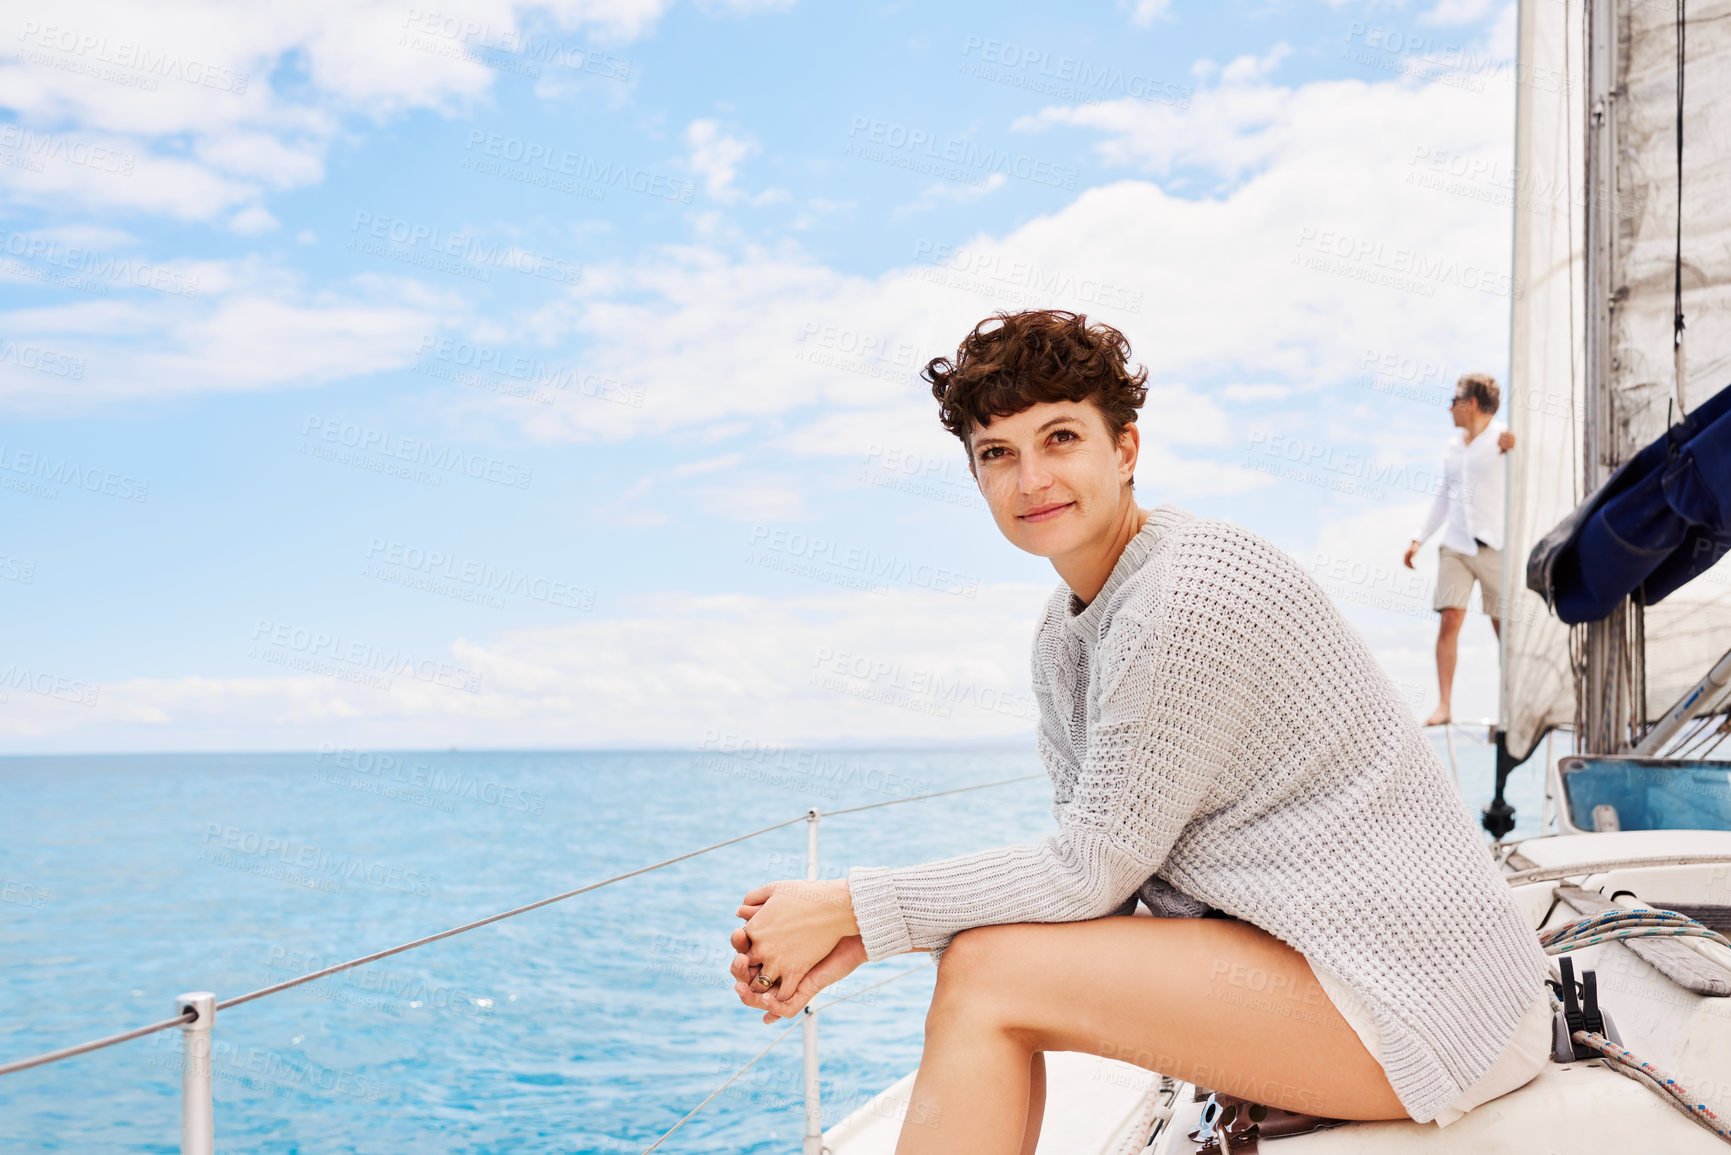 Buy stock photo Cropped portrait of an attractive mature woman enjoying a boat cruise out on the ocean with her husband in the background